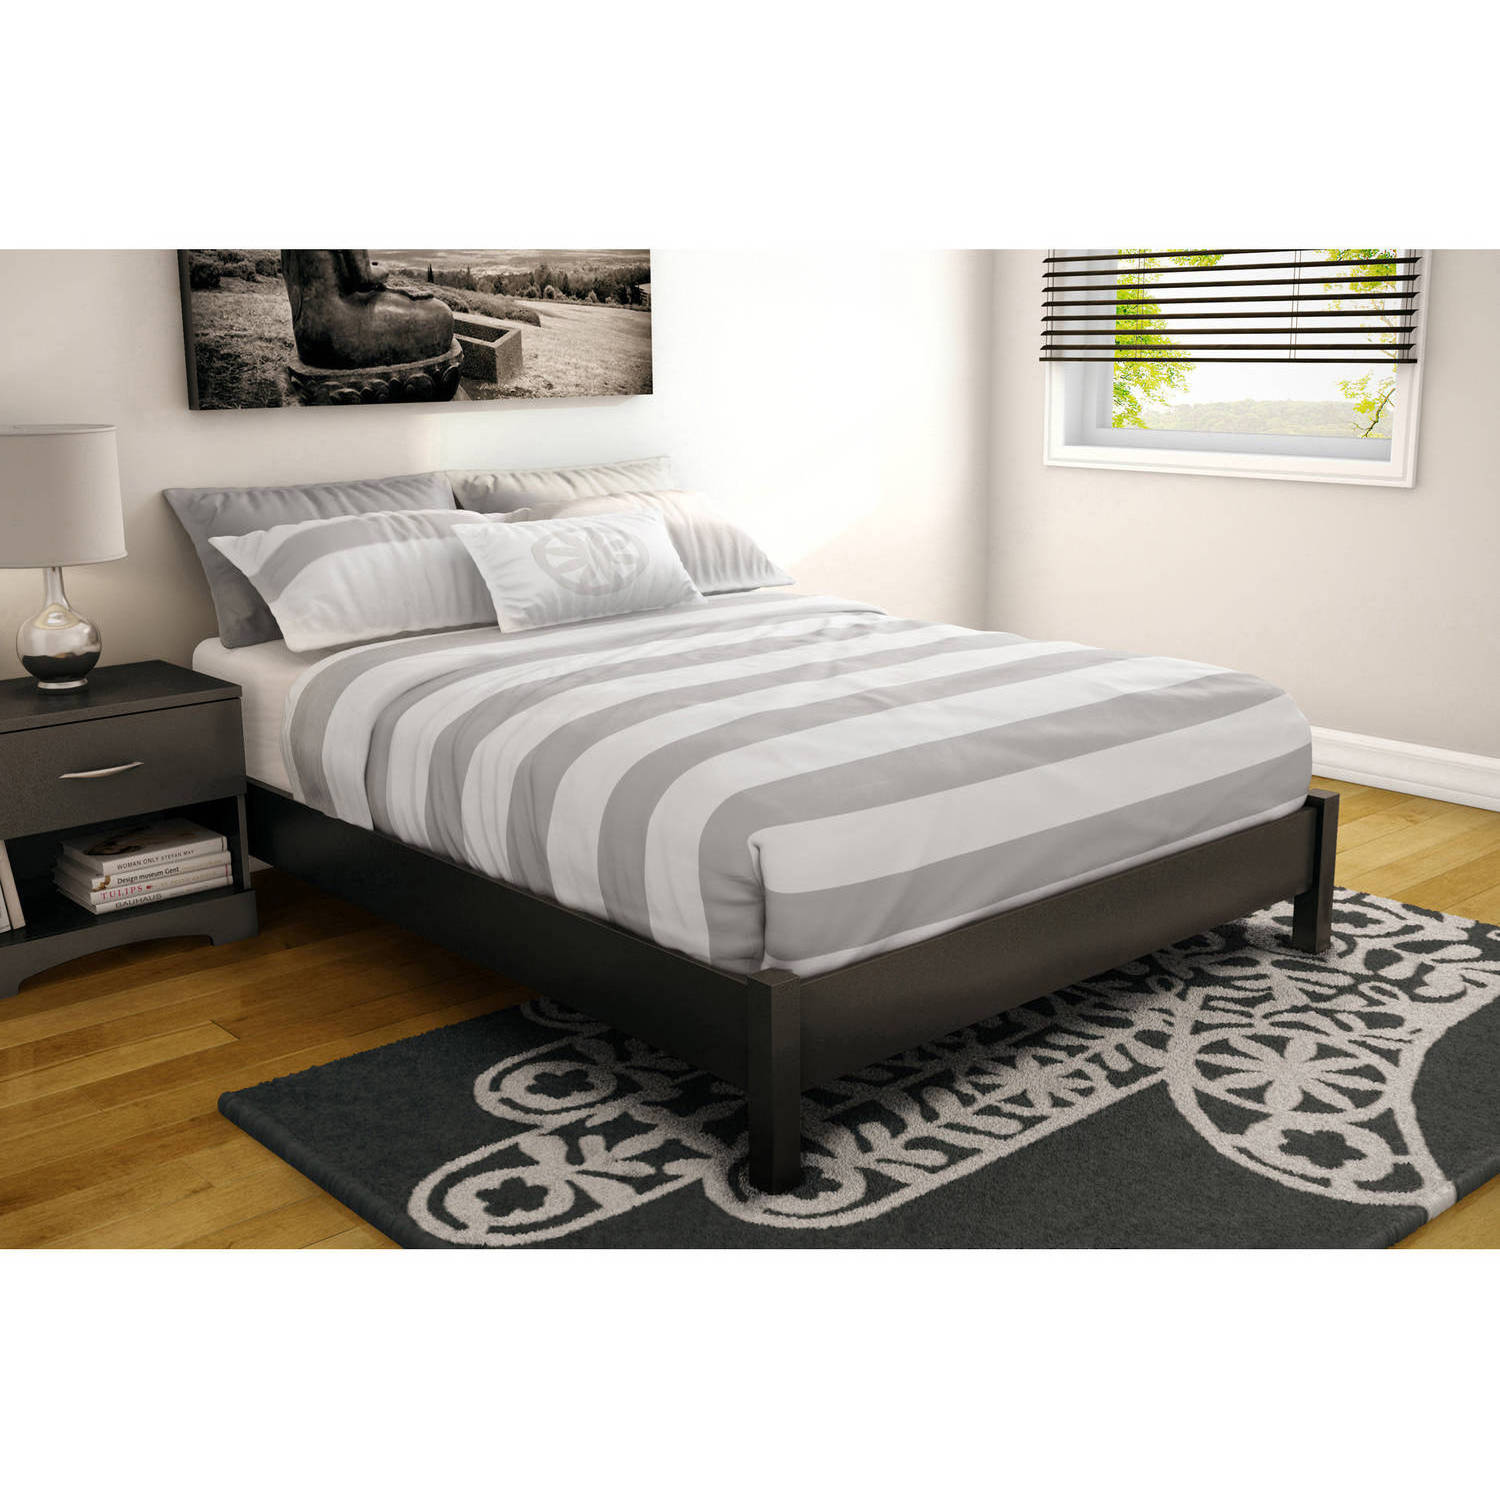 overstock wood style less for home beds century subcat size queen platform mid design bed garden